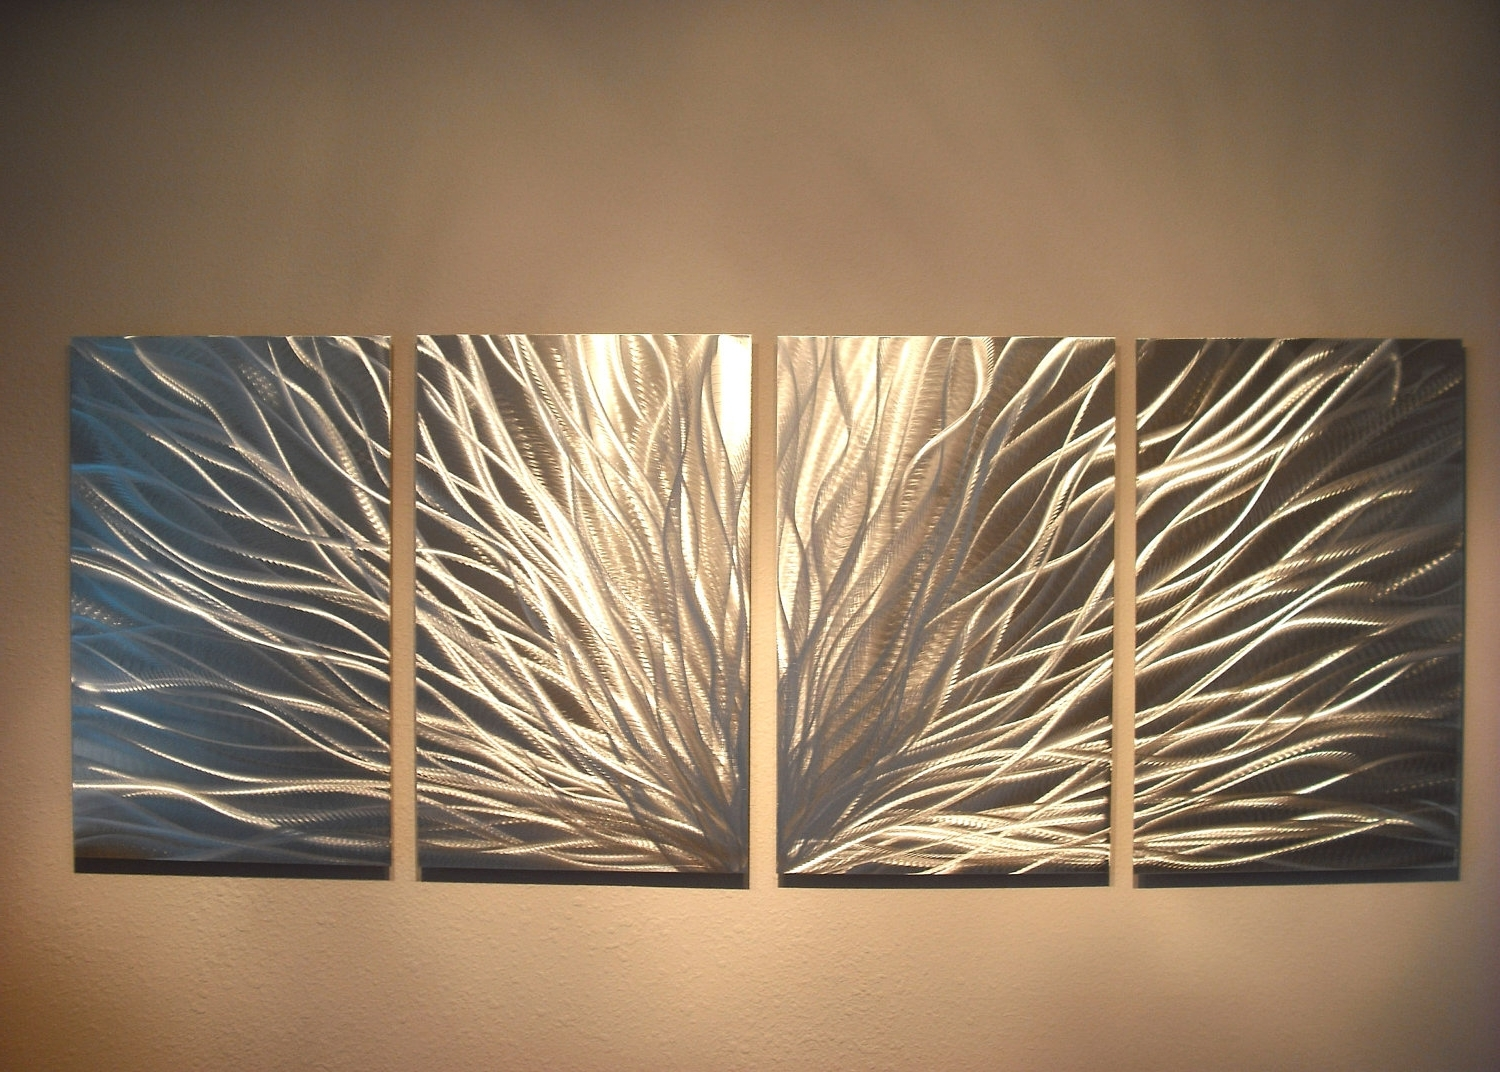 Metal Wall Art Panels With Famous Good Metal Wall Art Panels — Wazillo Media : Ways To Hang Metal Wall (View 11 of 20)